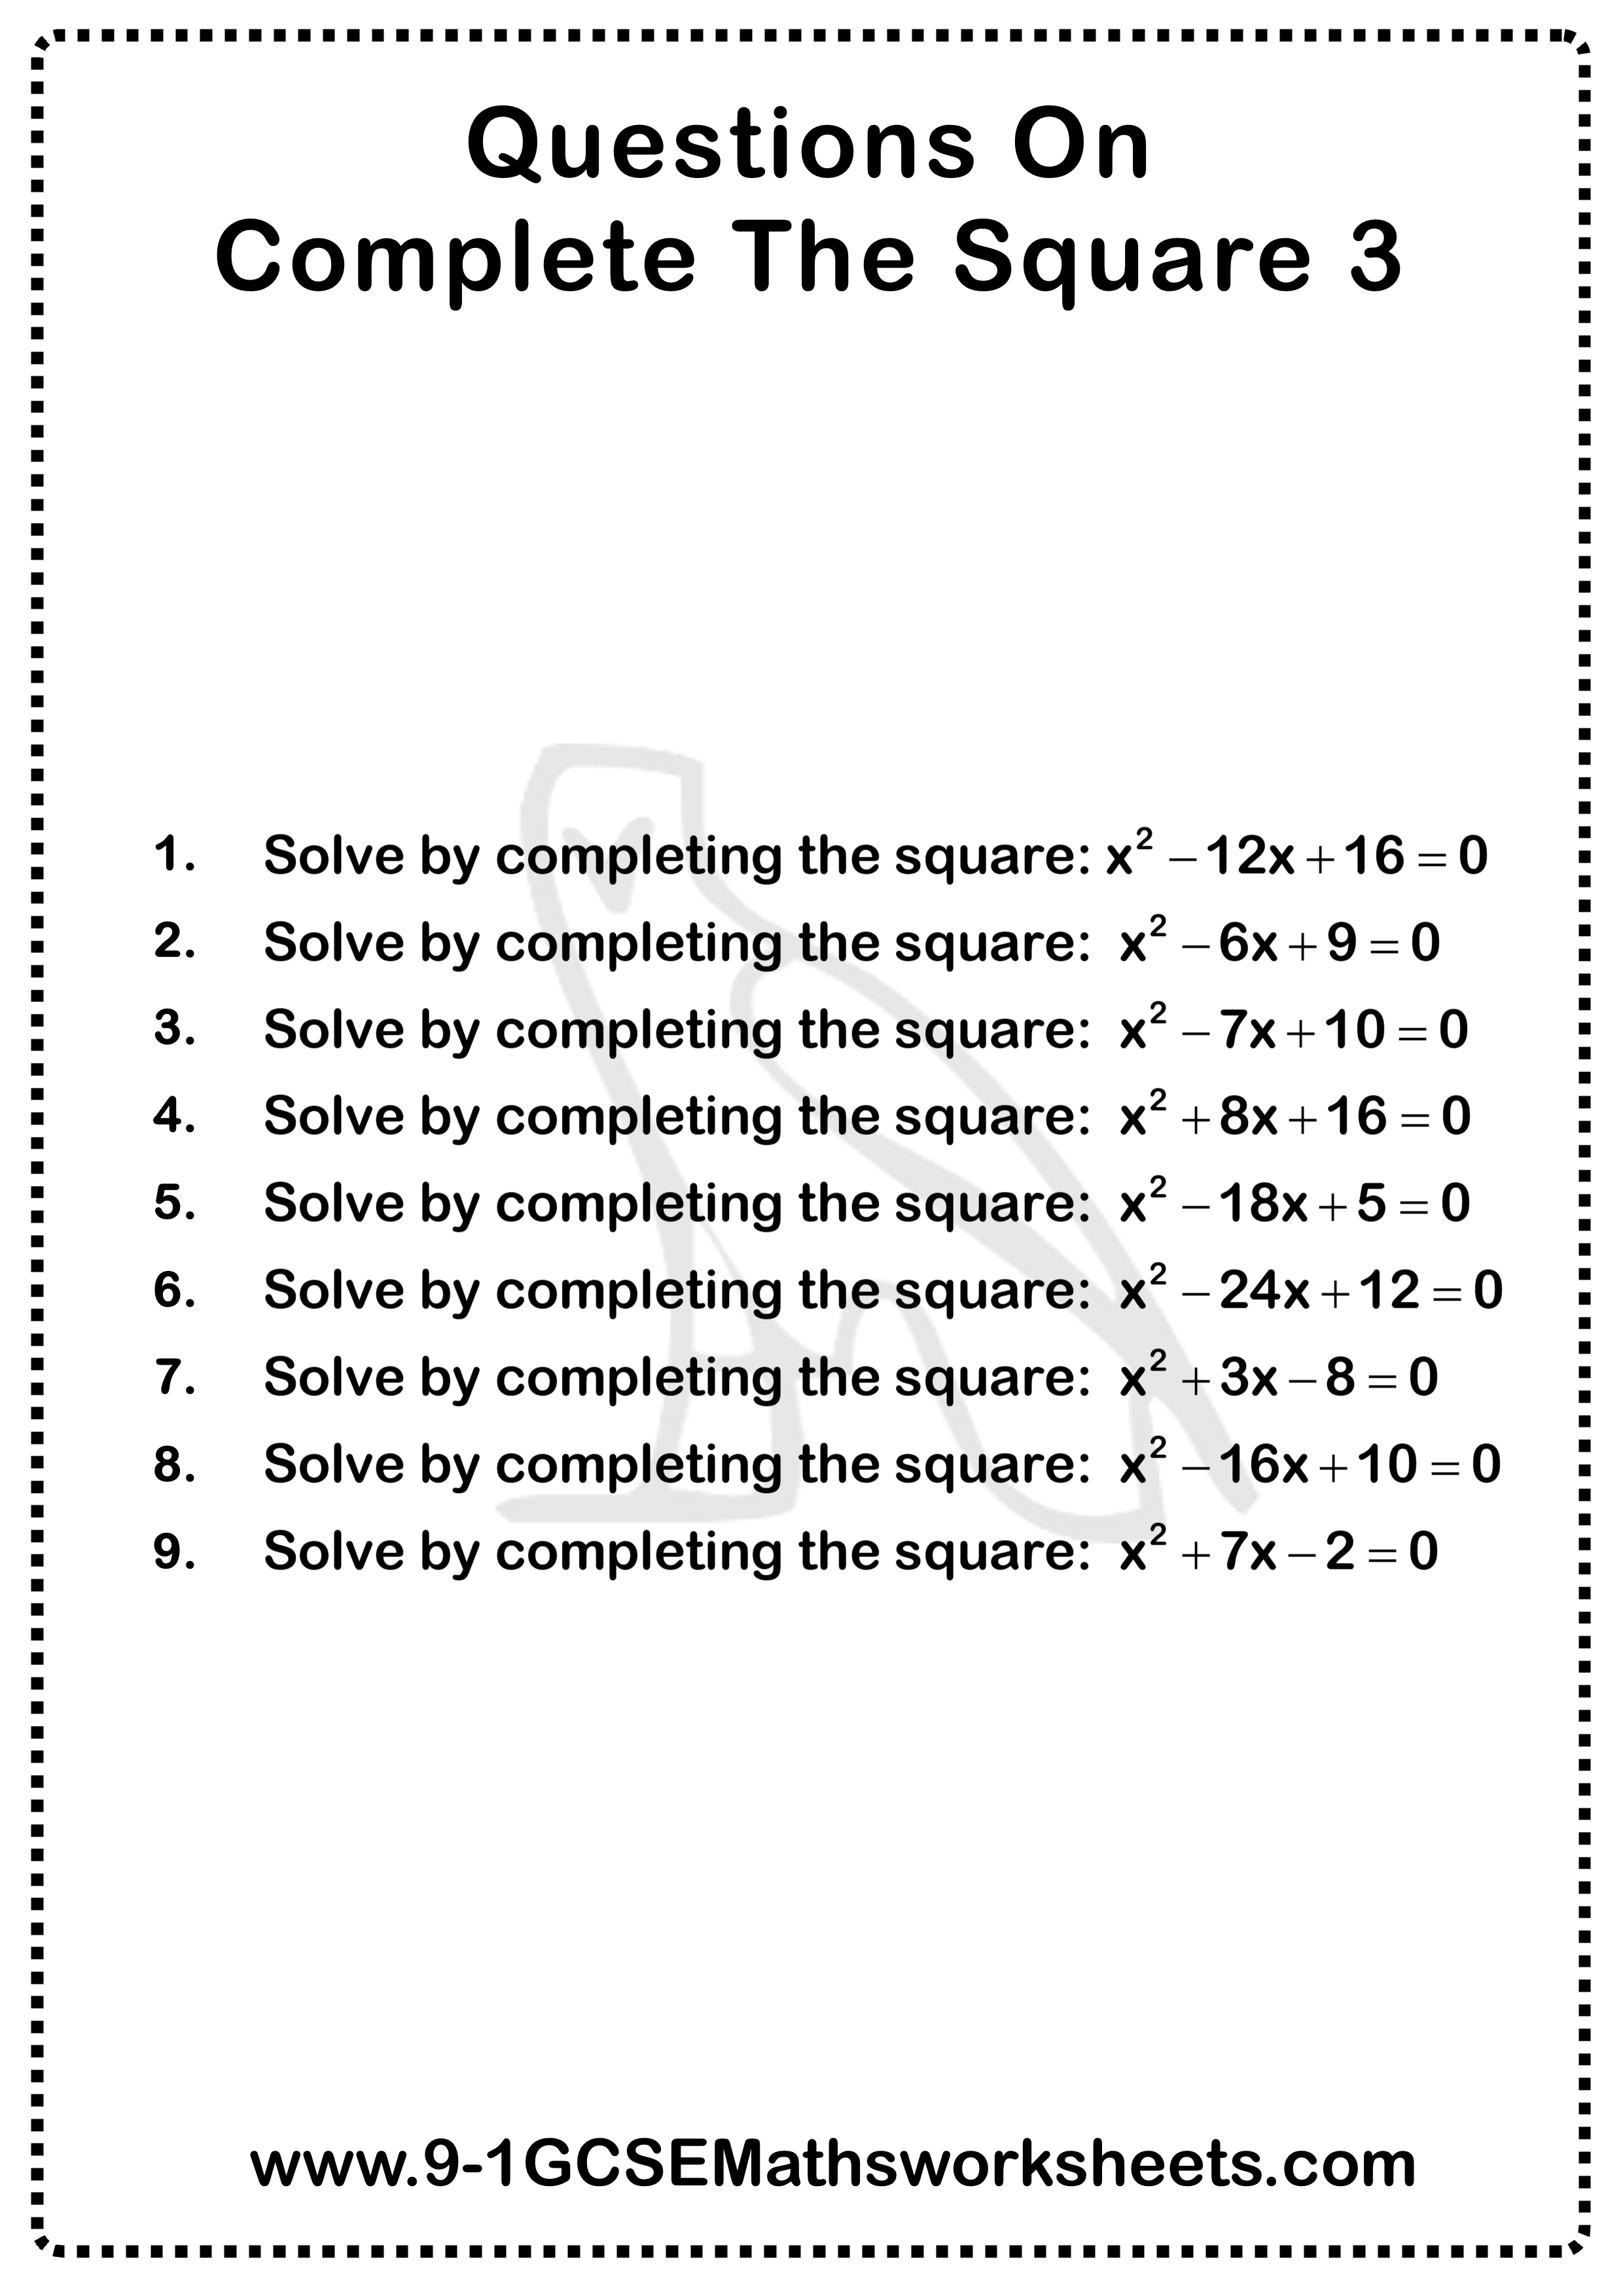 Completing The Square Questions 3 In